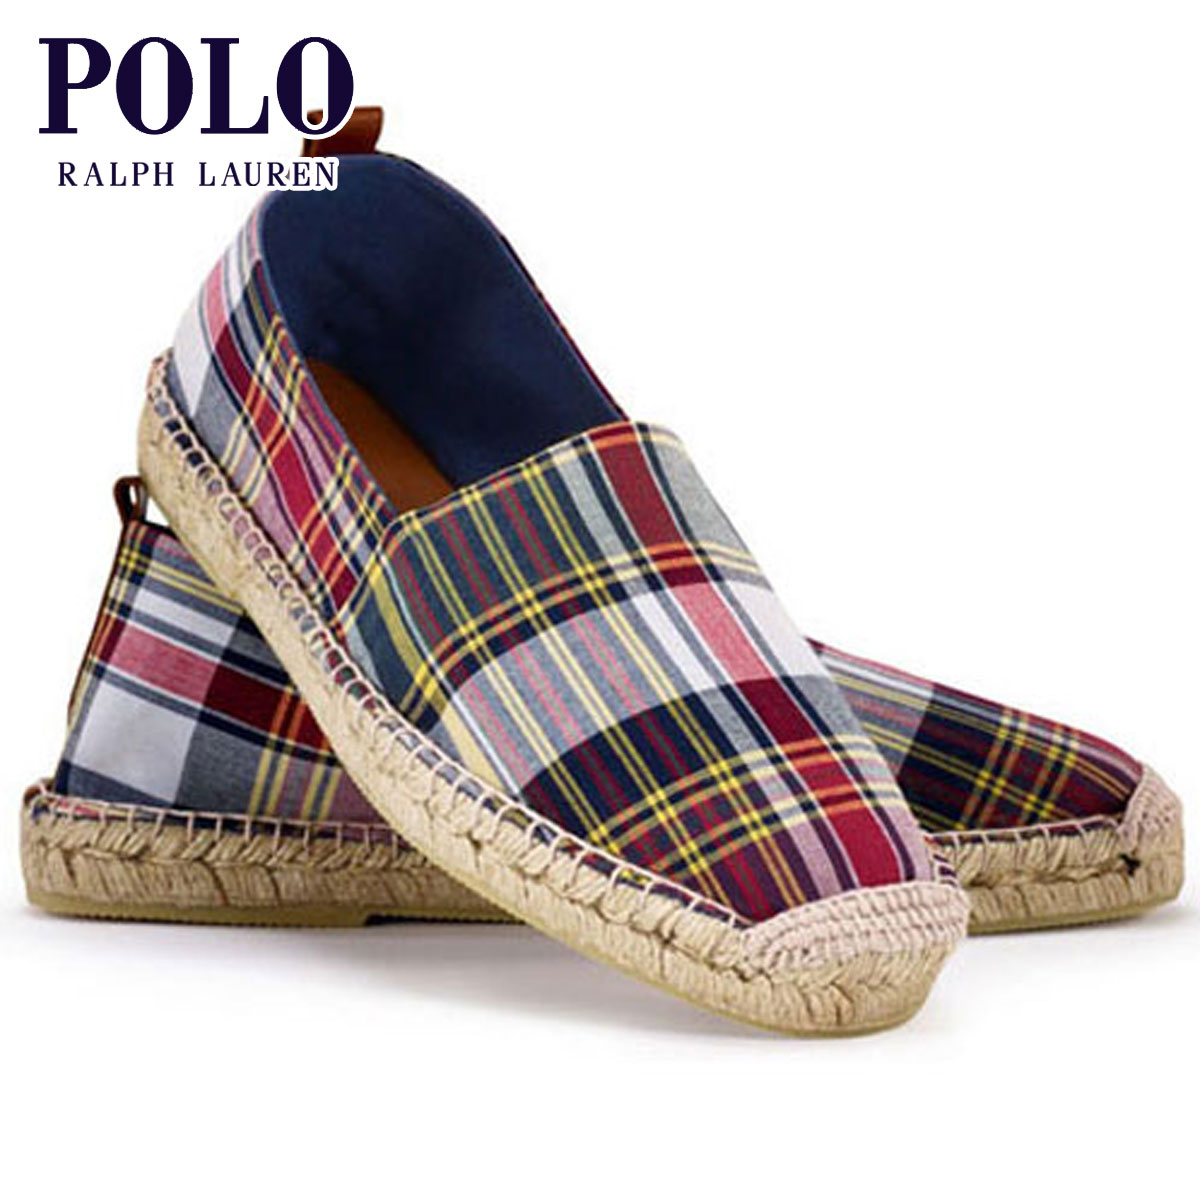 Polo Ralph Lauren POLO RALPH LAUREN genuine men s shoes shoes Madras  Espadrille 59c40a9f65f8